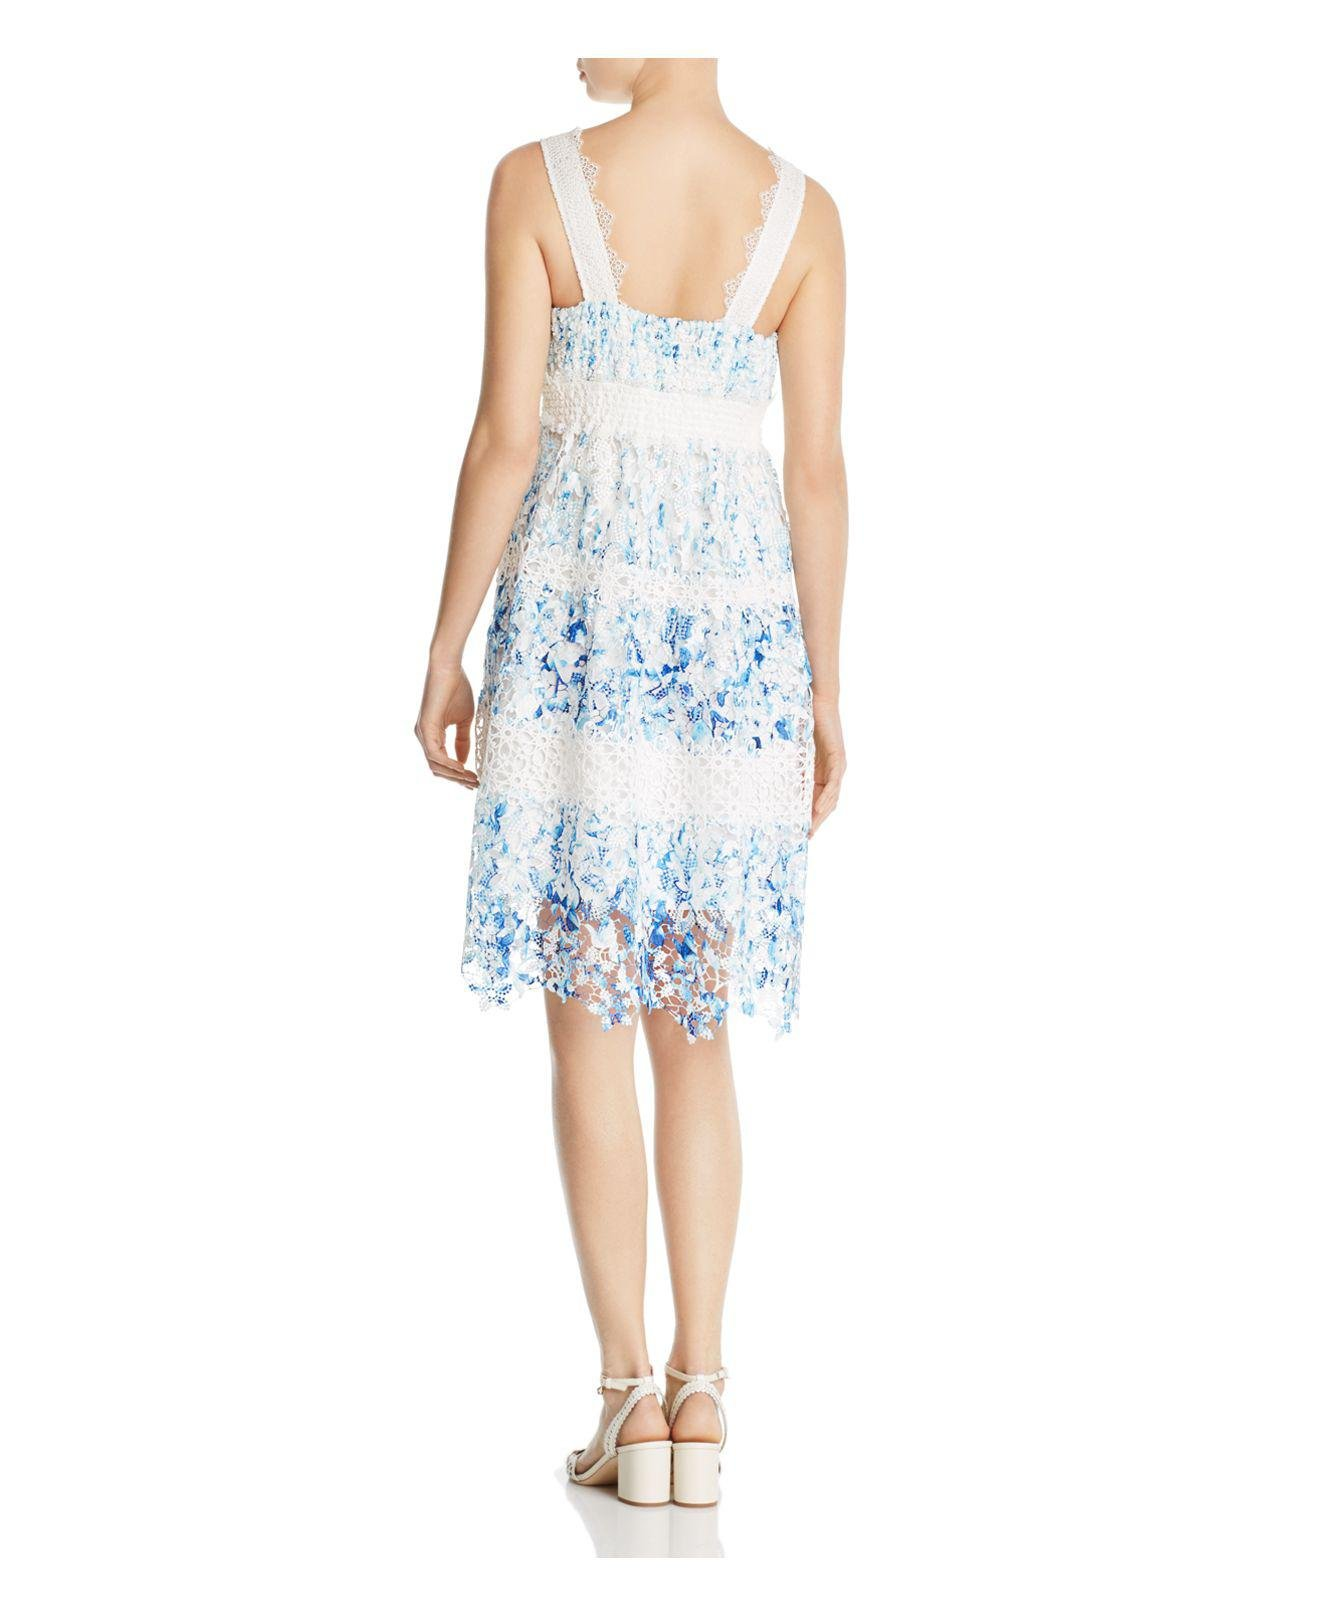 84b1630ae0484 Elie Tahari Malina Floral Lace Dress in Blue - Lyst